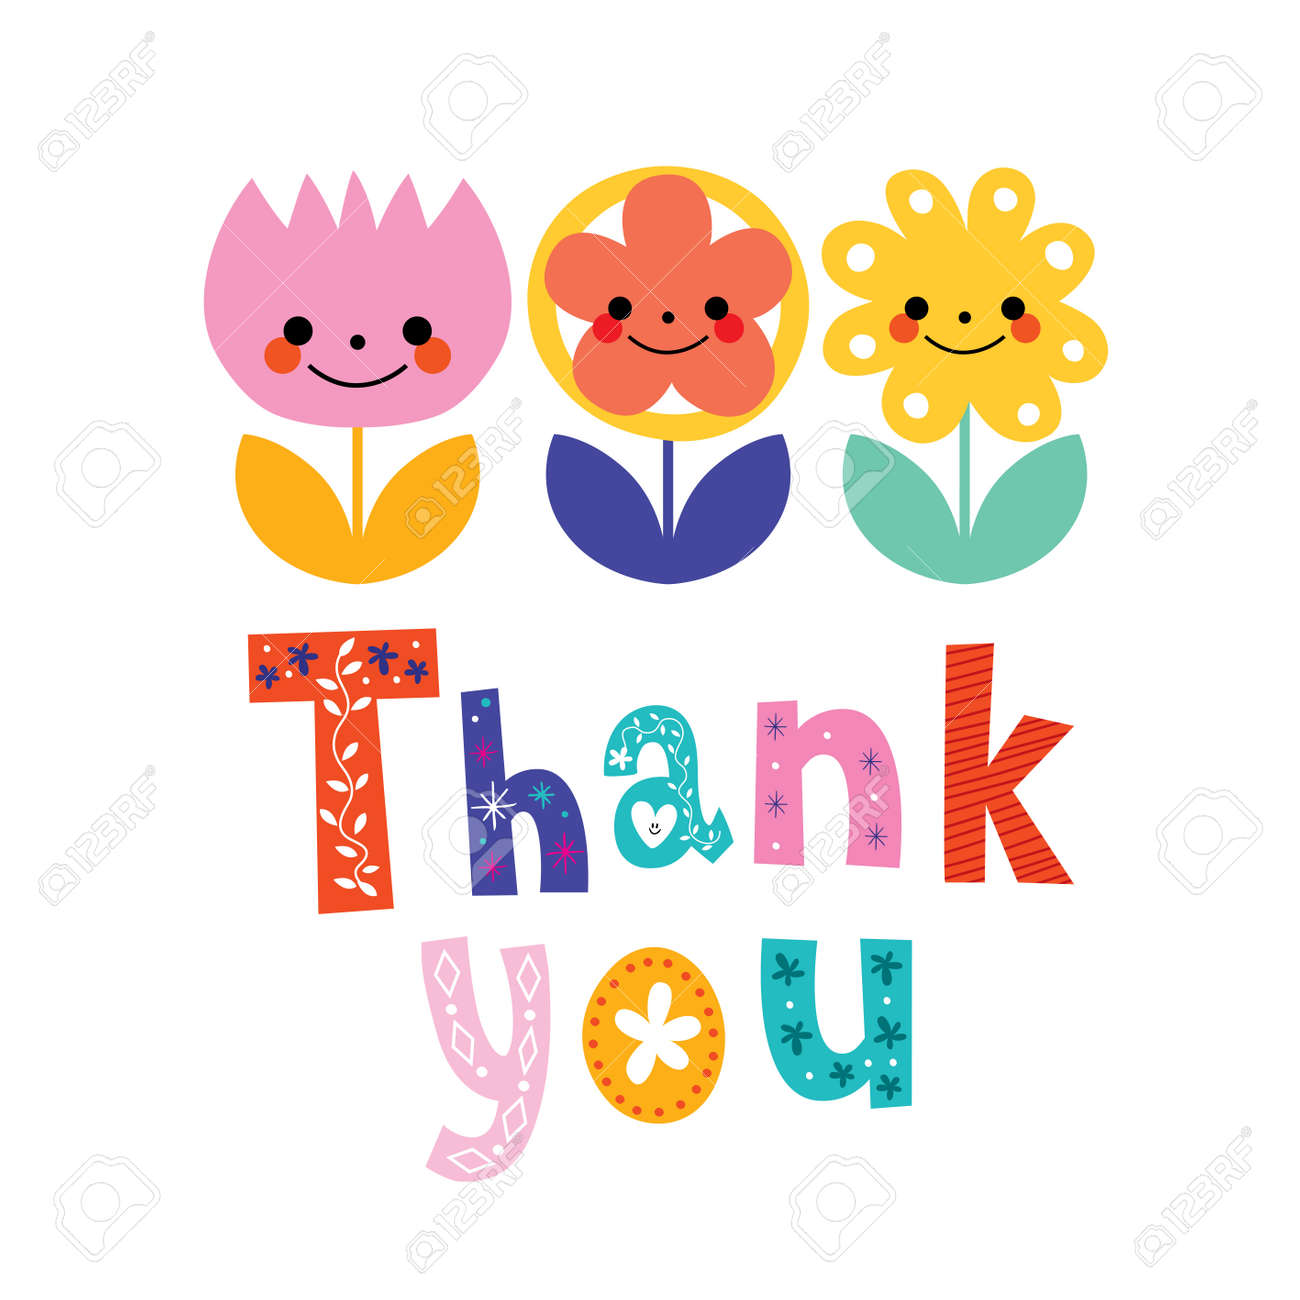 Thank You Greeting Card Royalty Free Cliparts Vectors And Stock